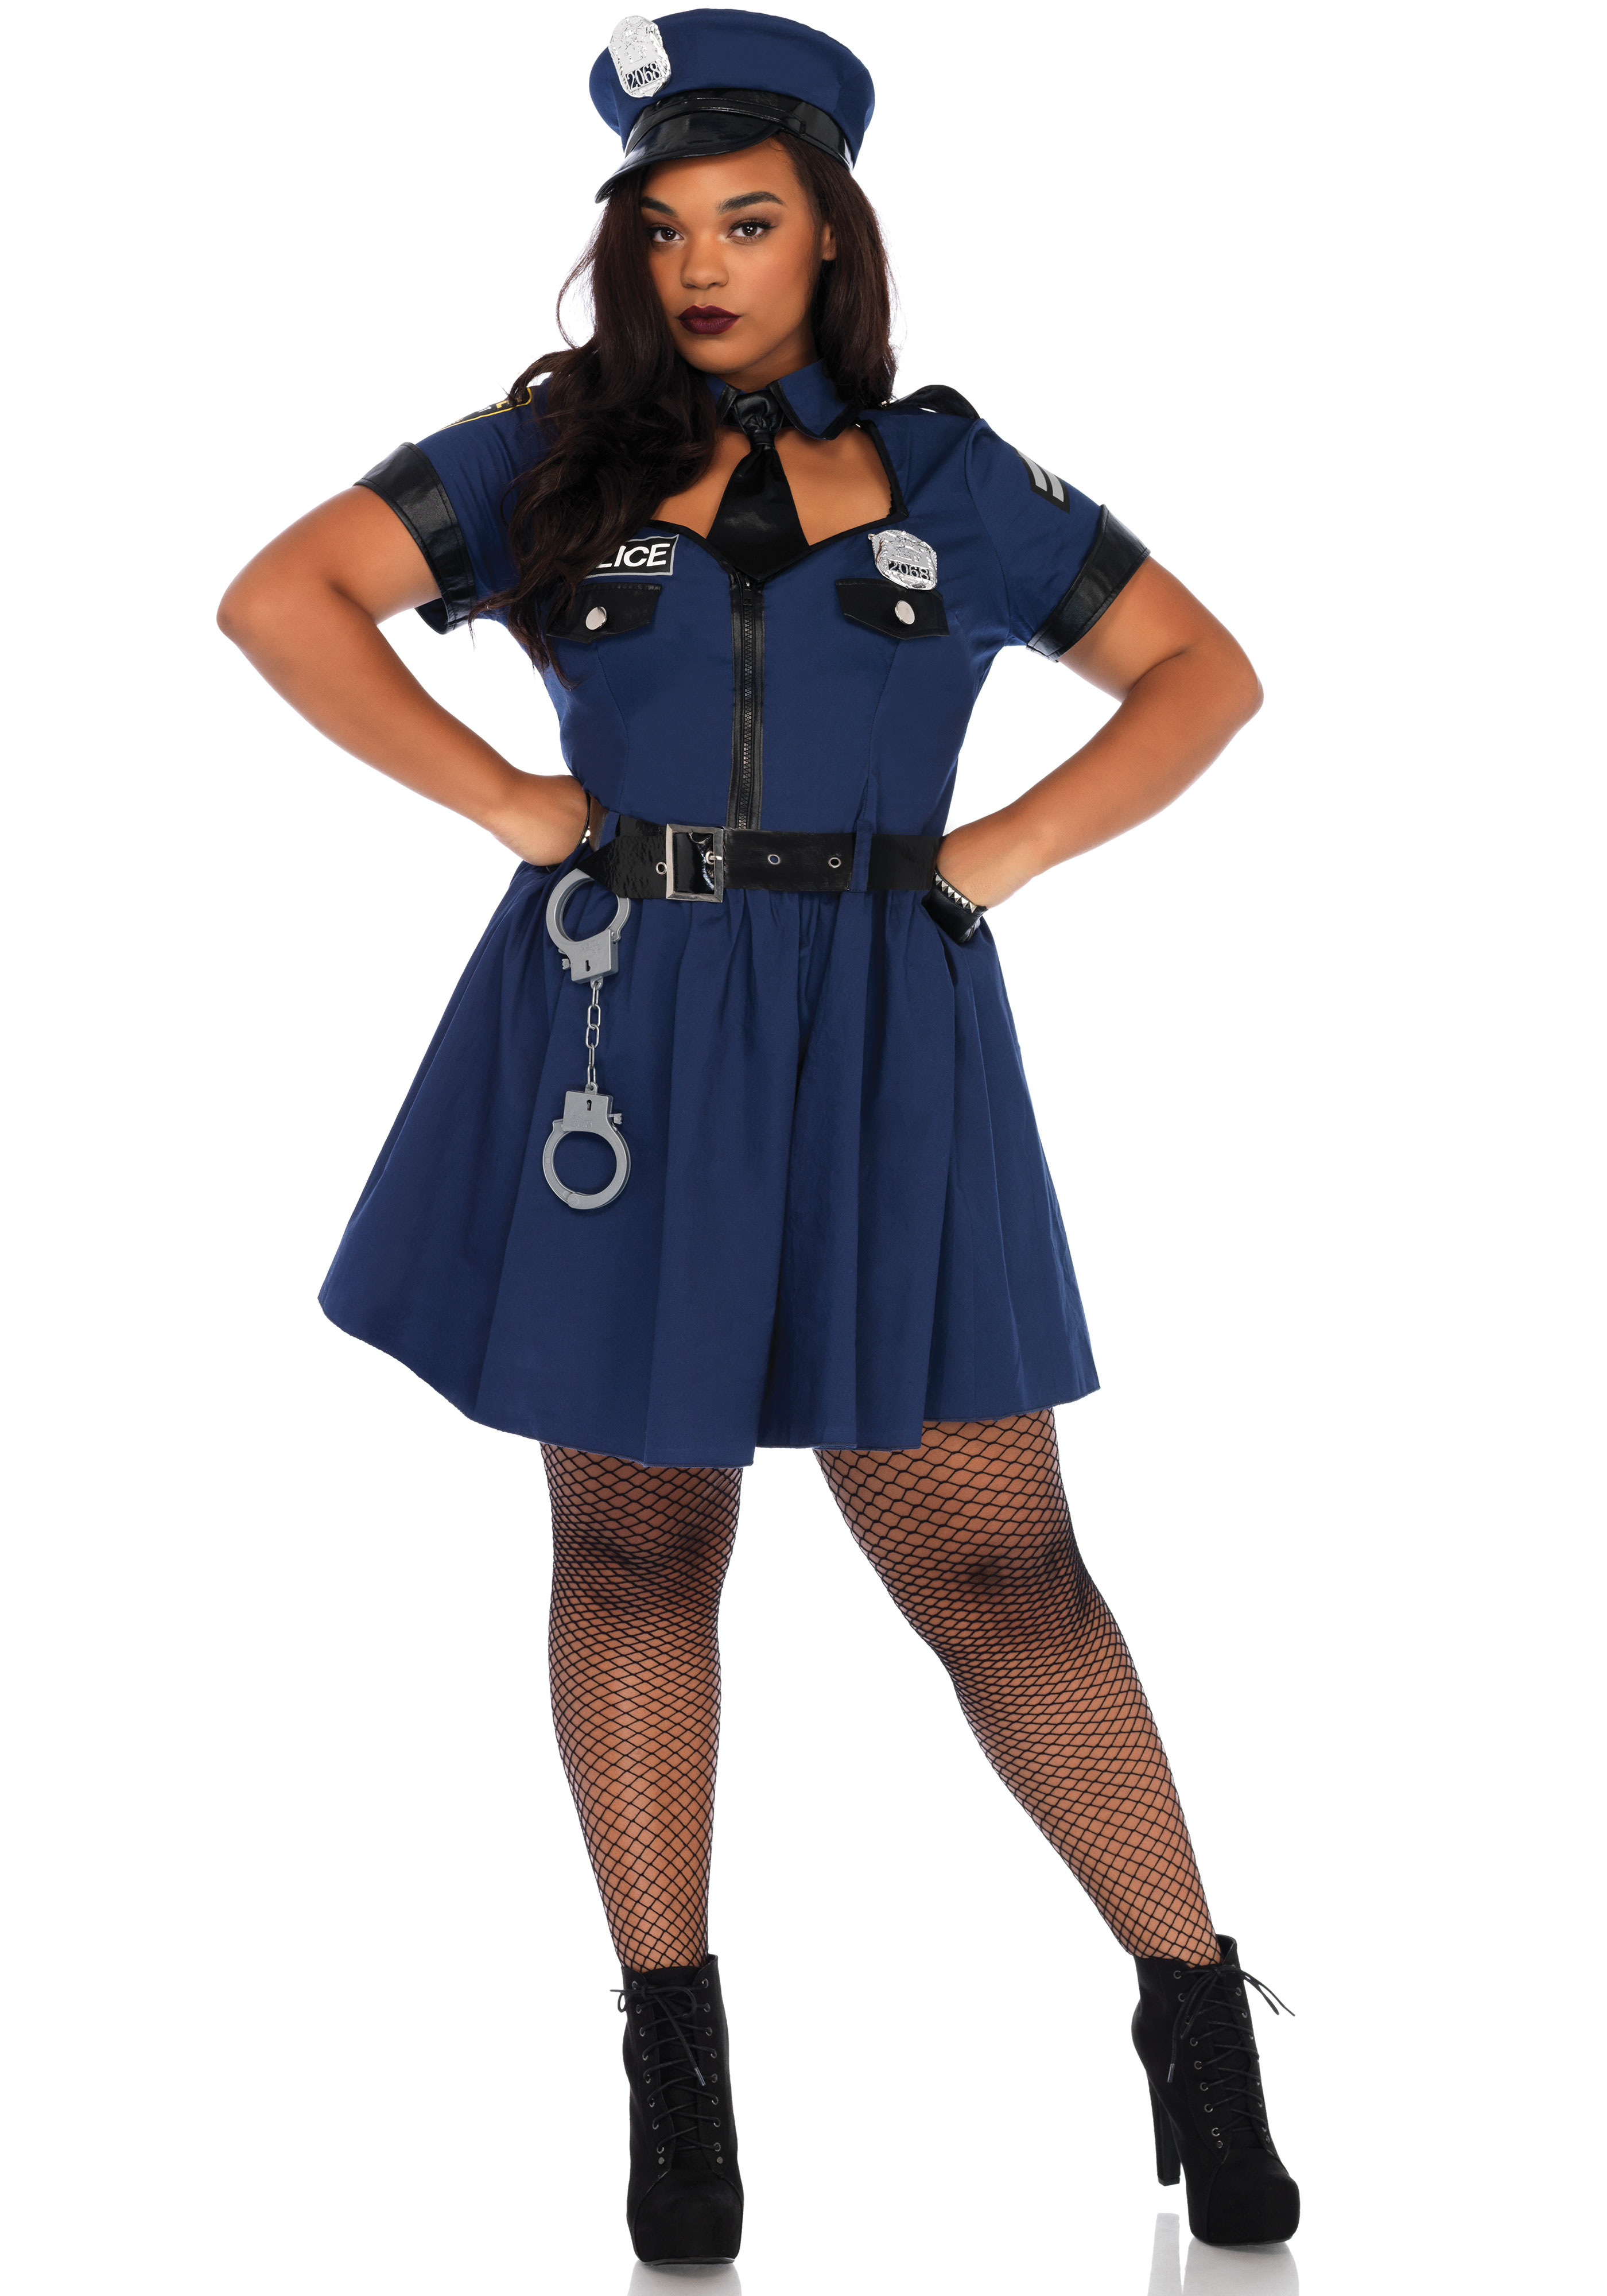 5PC. Plus Size Flirty Cop costume, includes zipper front dress with badge accents, neck tie choker, belt, toy handcuffs, and matching policehat.